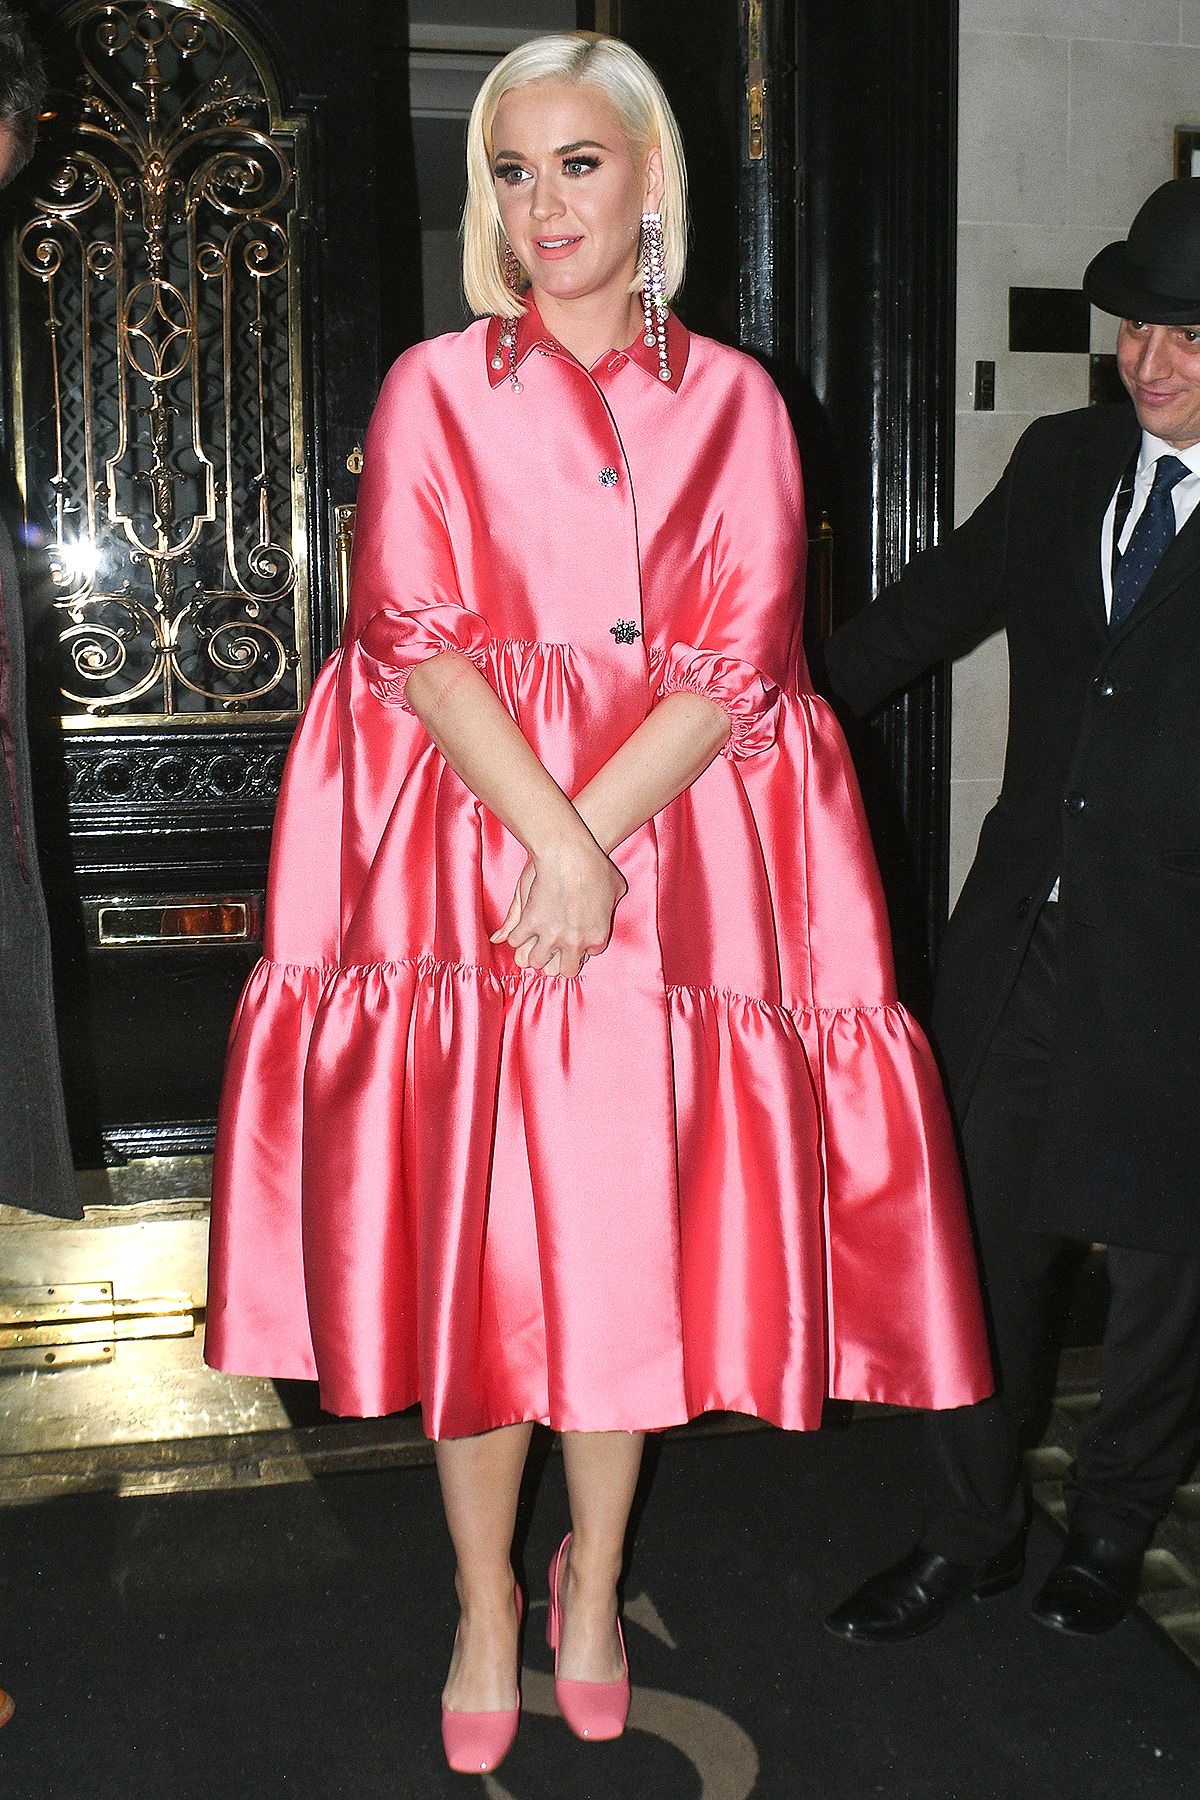 Katy Perry seen leaving Scott's restaurant in Mayfair on February 03, 2020 in London, England.